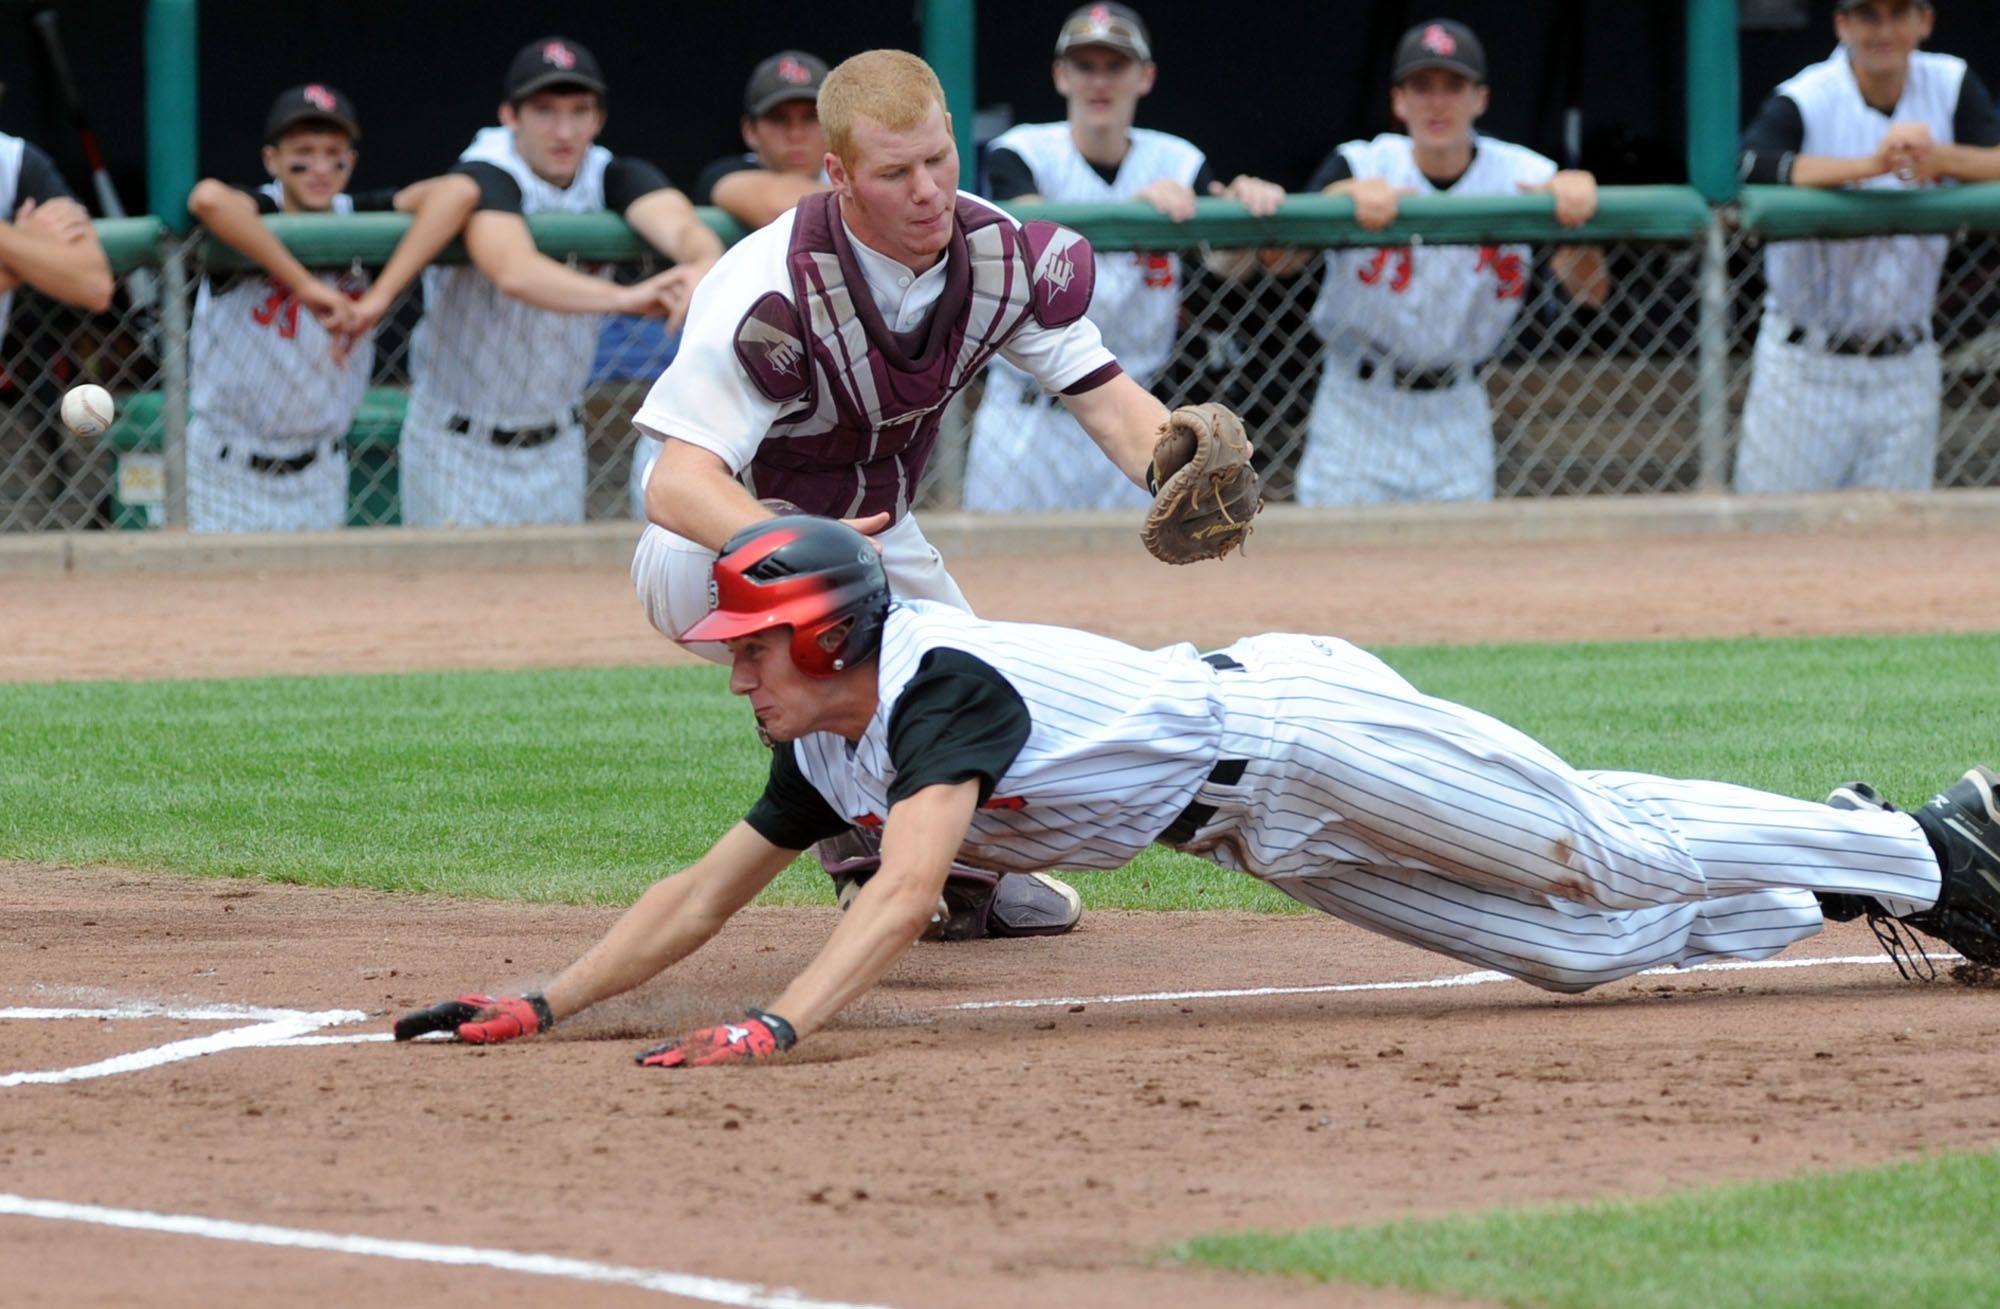 RolandStory baseball plays during the state tournament